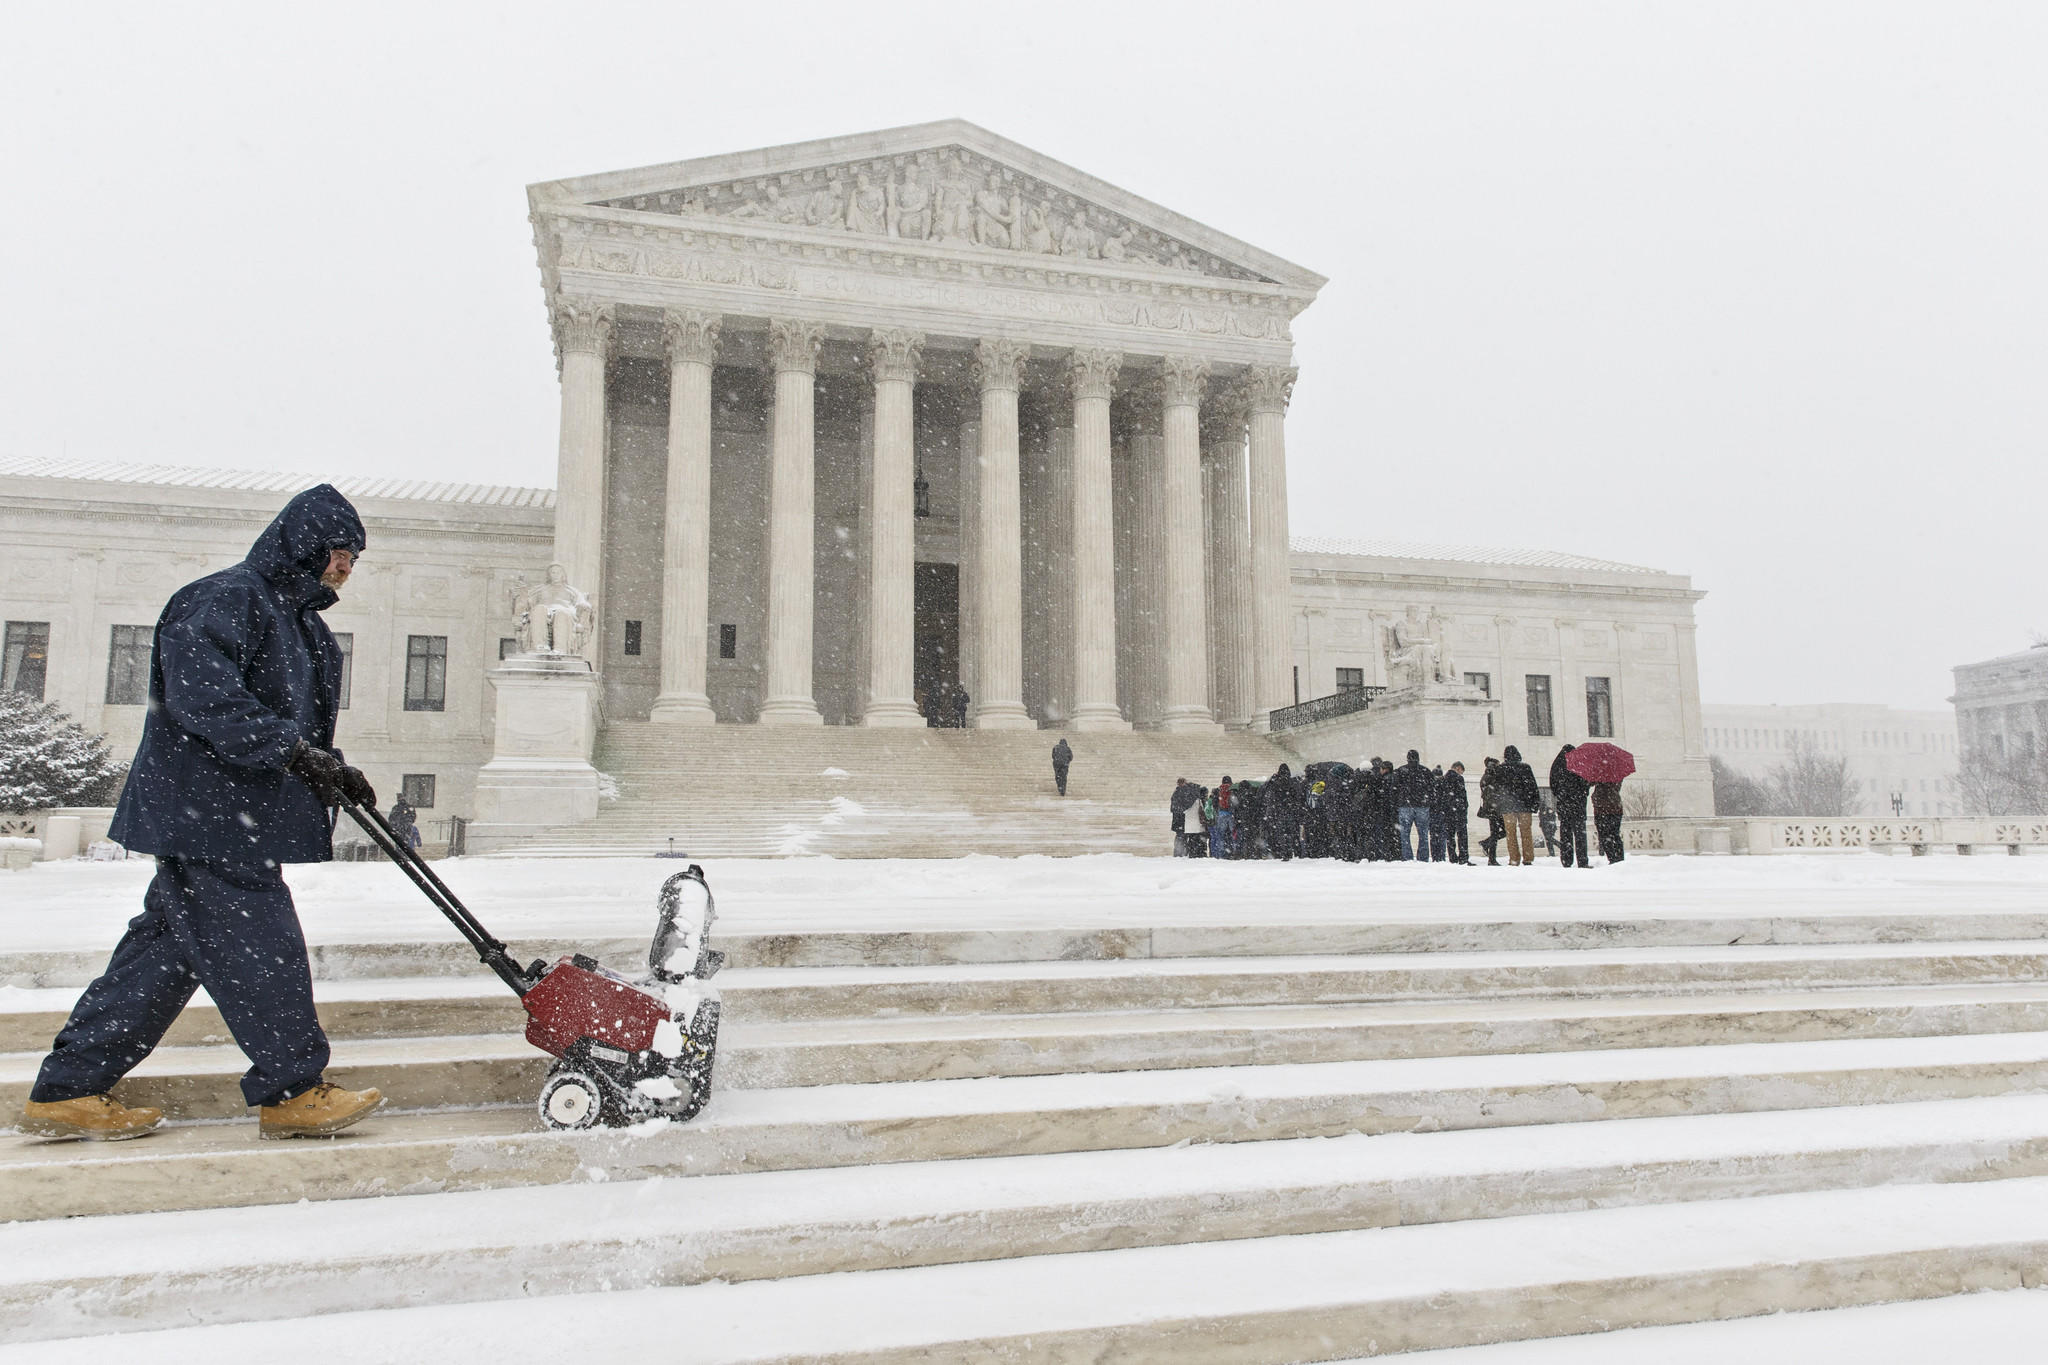 A worker clears snow from the plaza at the Supreme Court in Washington on Monday as those waiting to hear oral arguments line up.